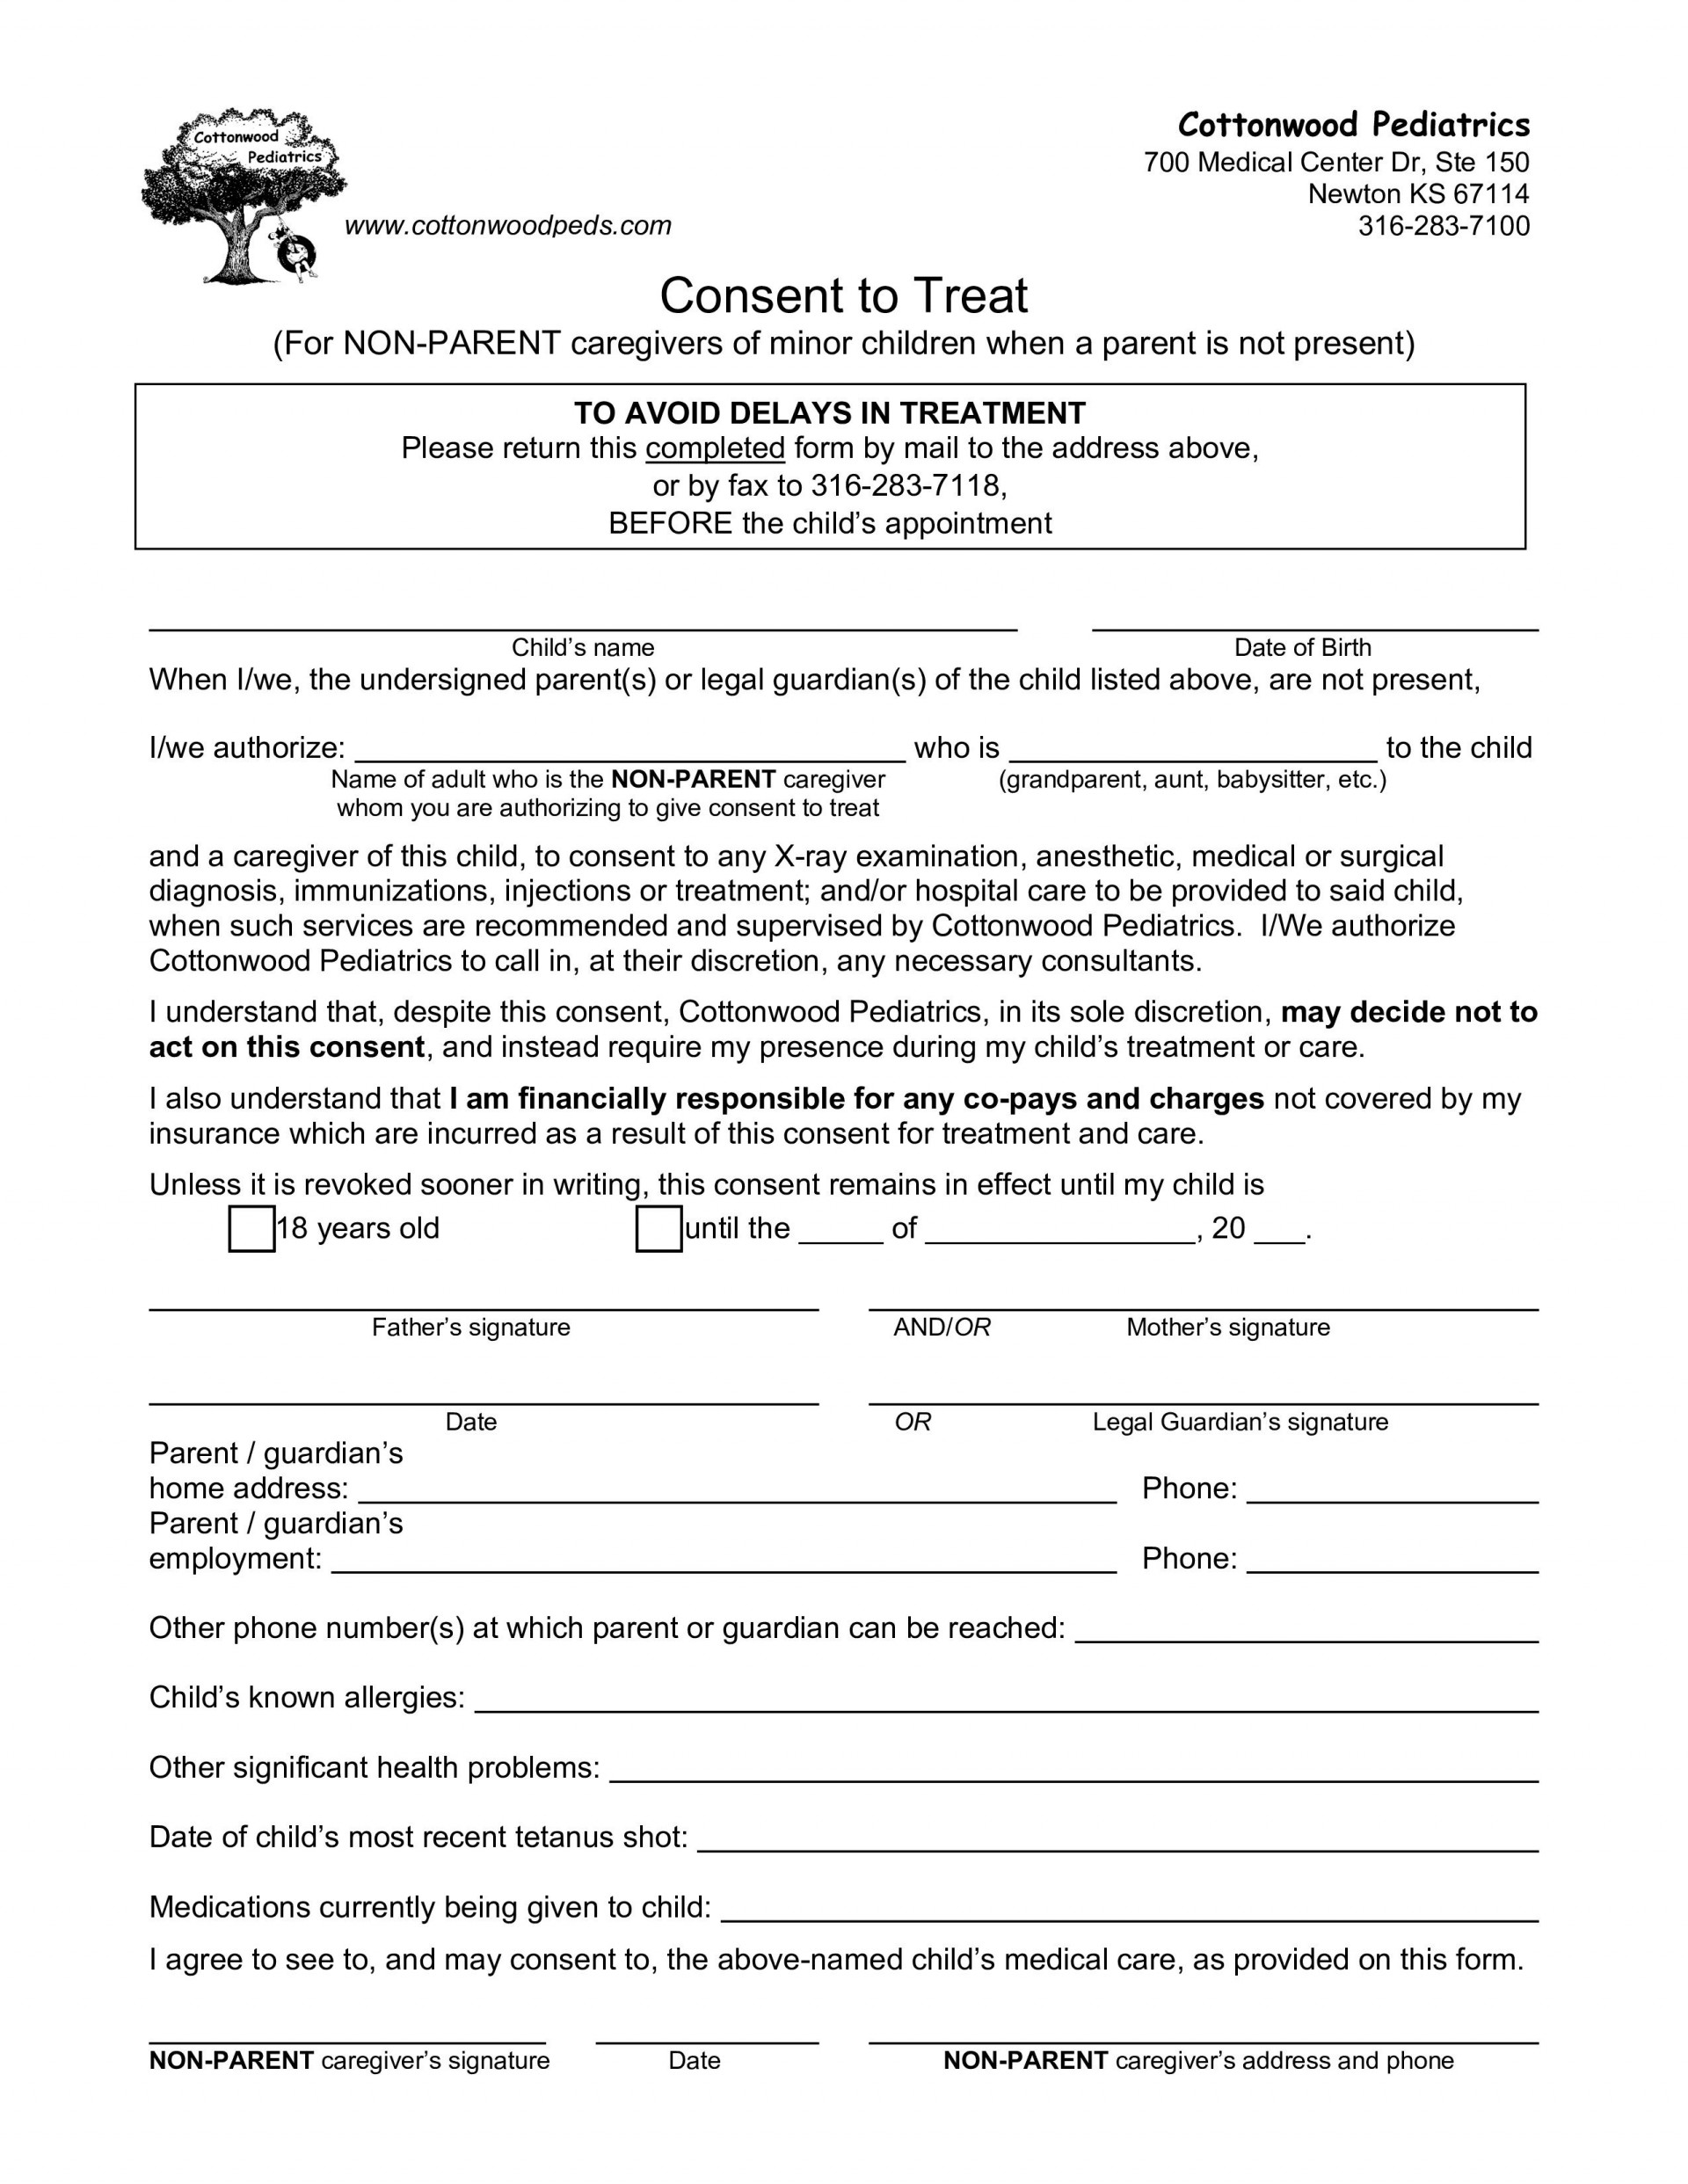 004 Simple Medical Release Form Template High Def  Free Consent Uk For Minor1920